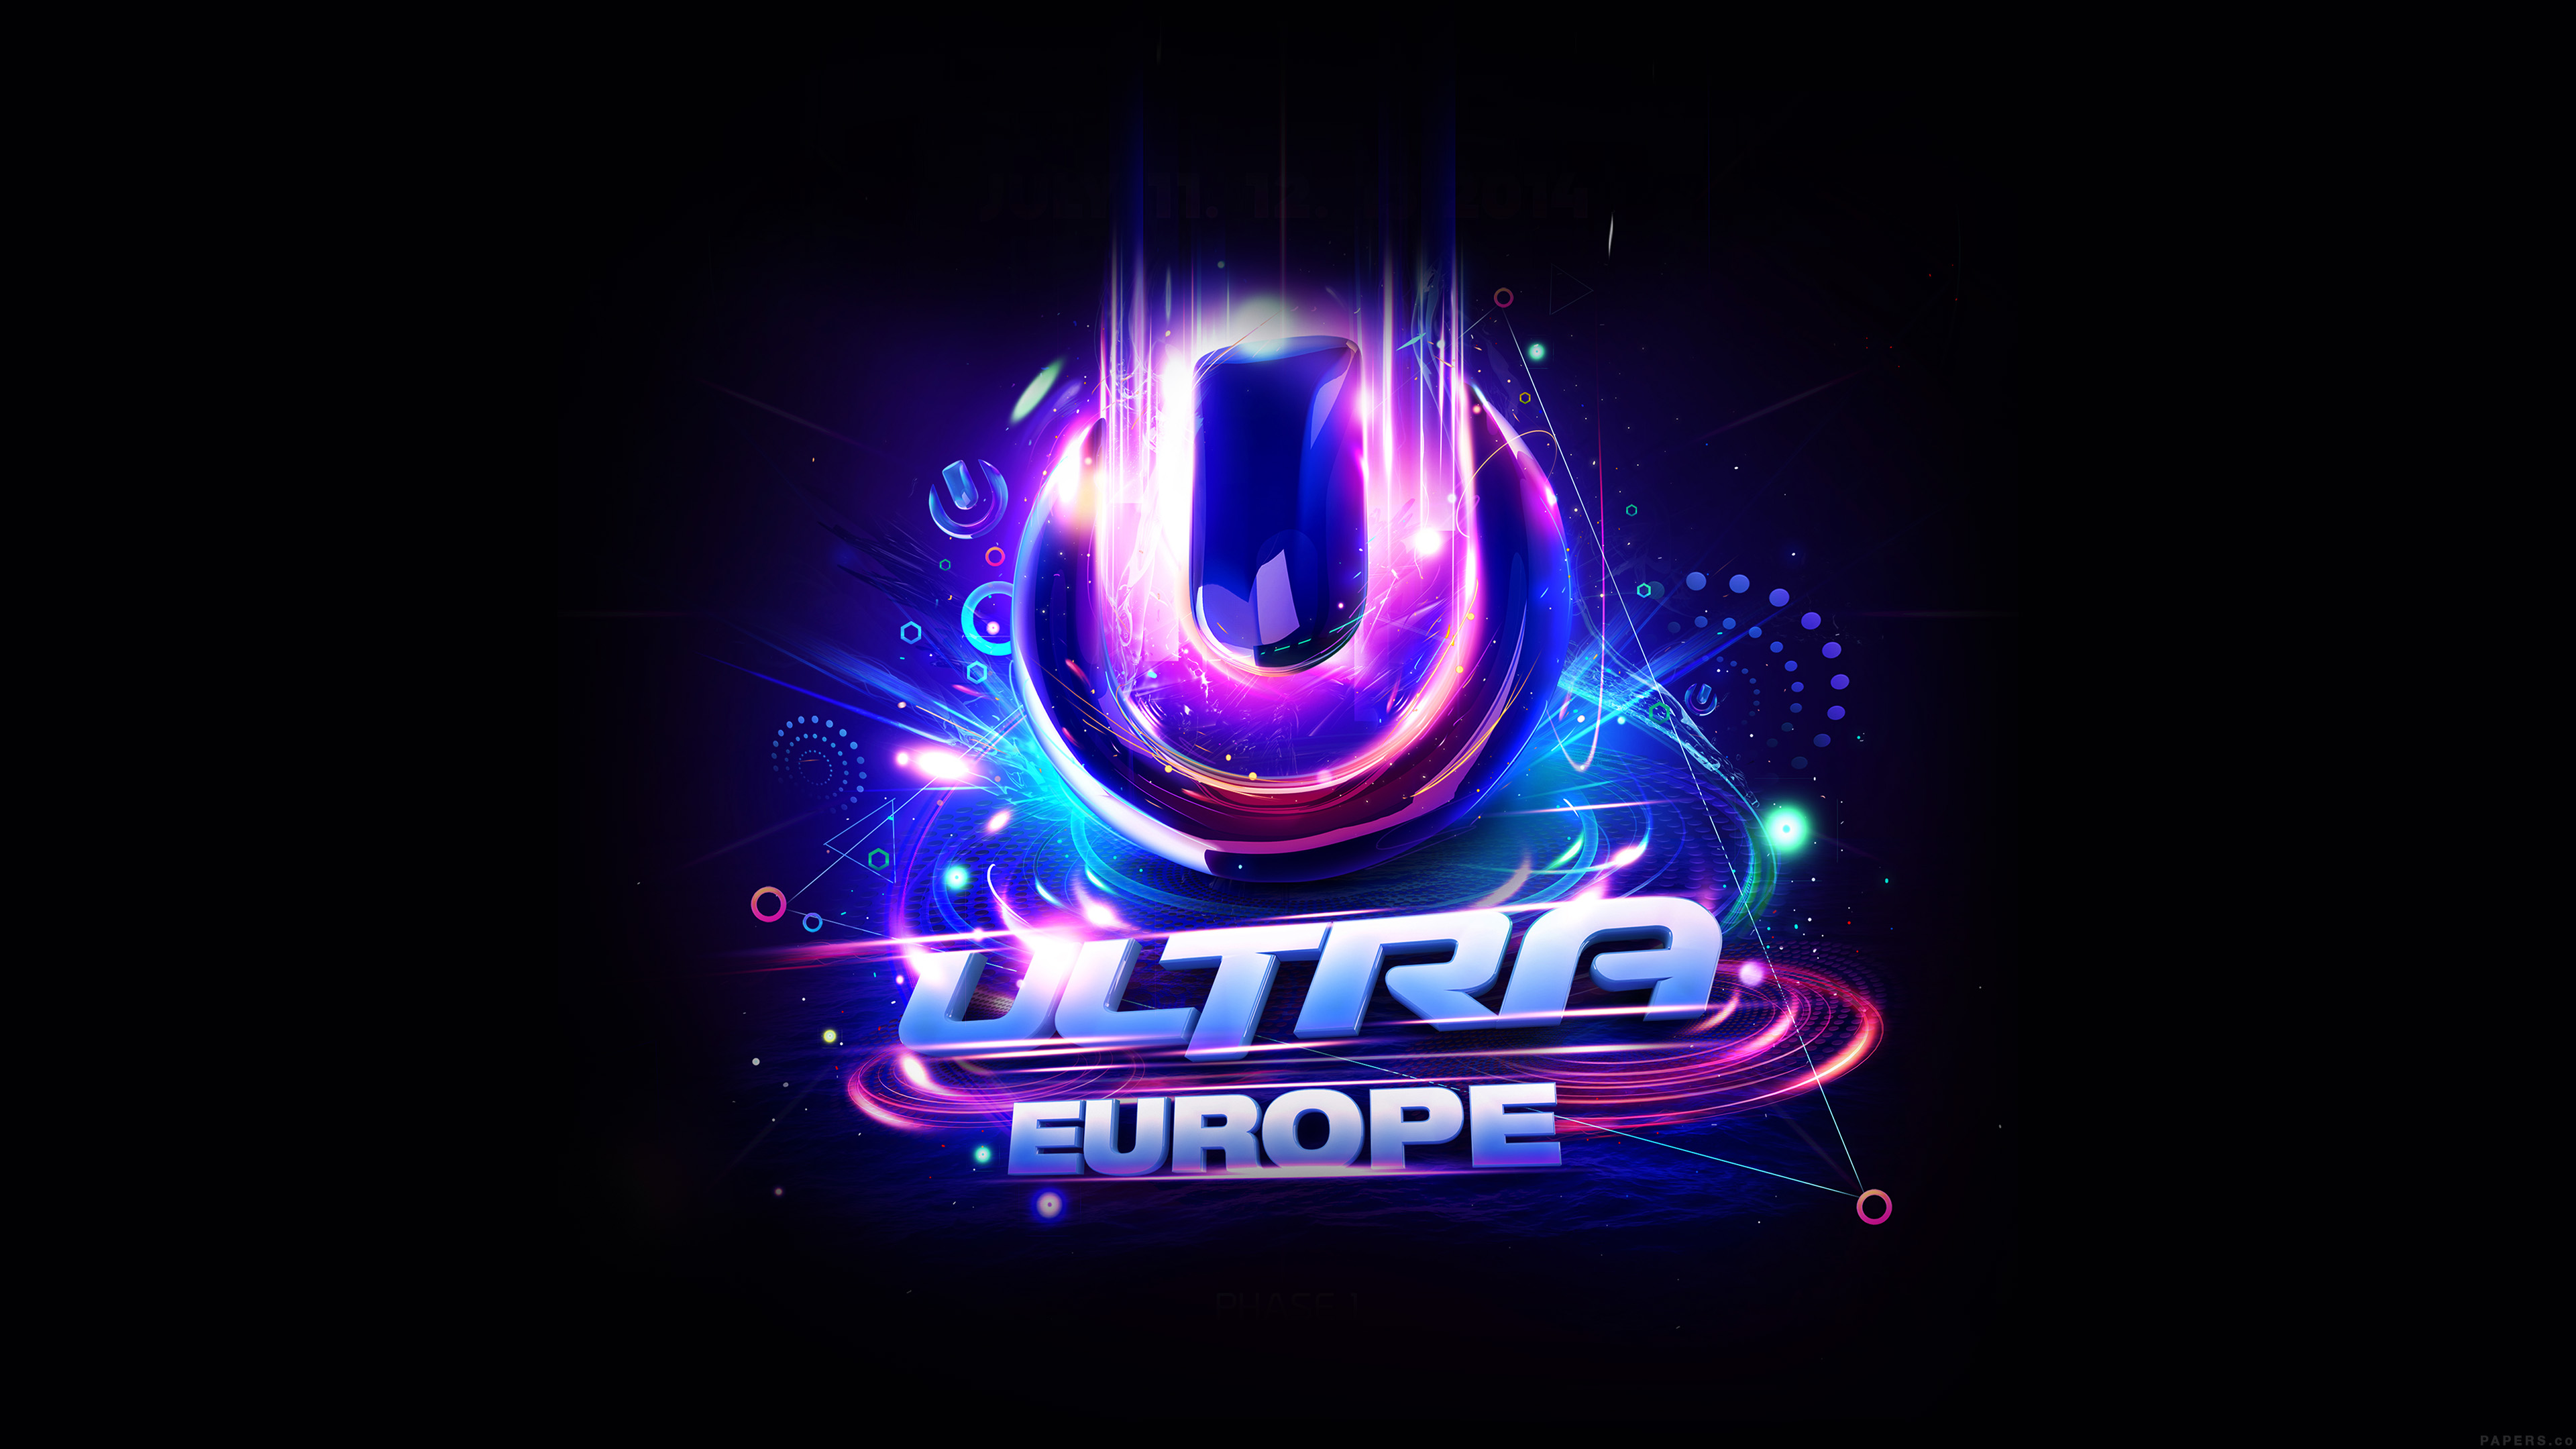 Al72 Ultra Europe Art Poster Music Party